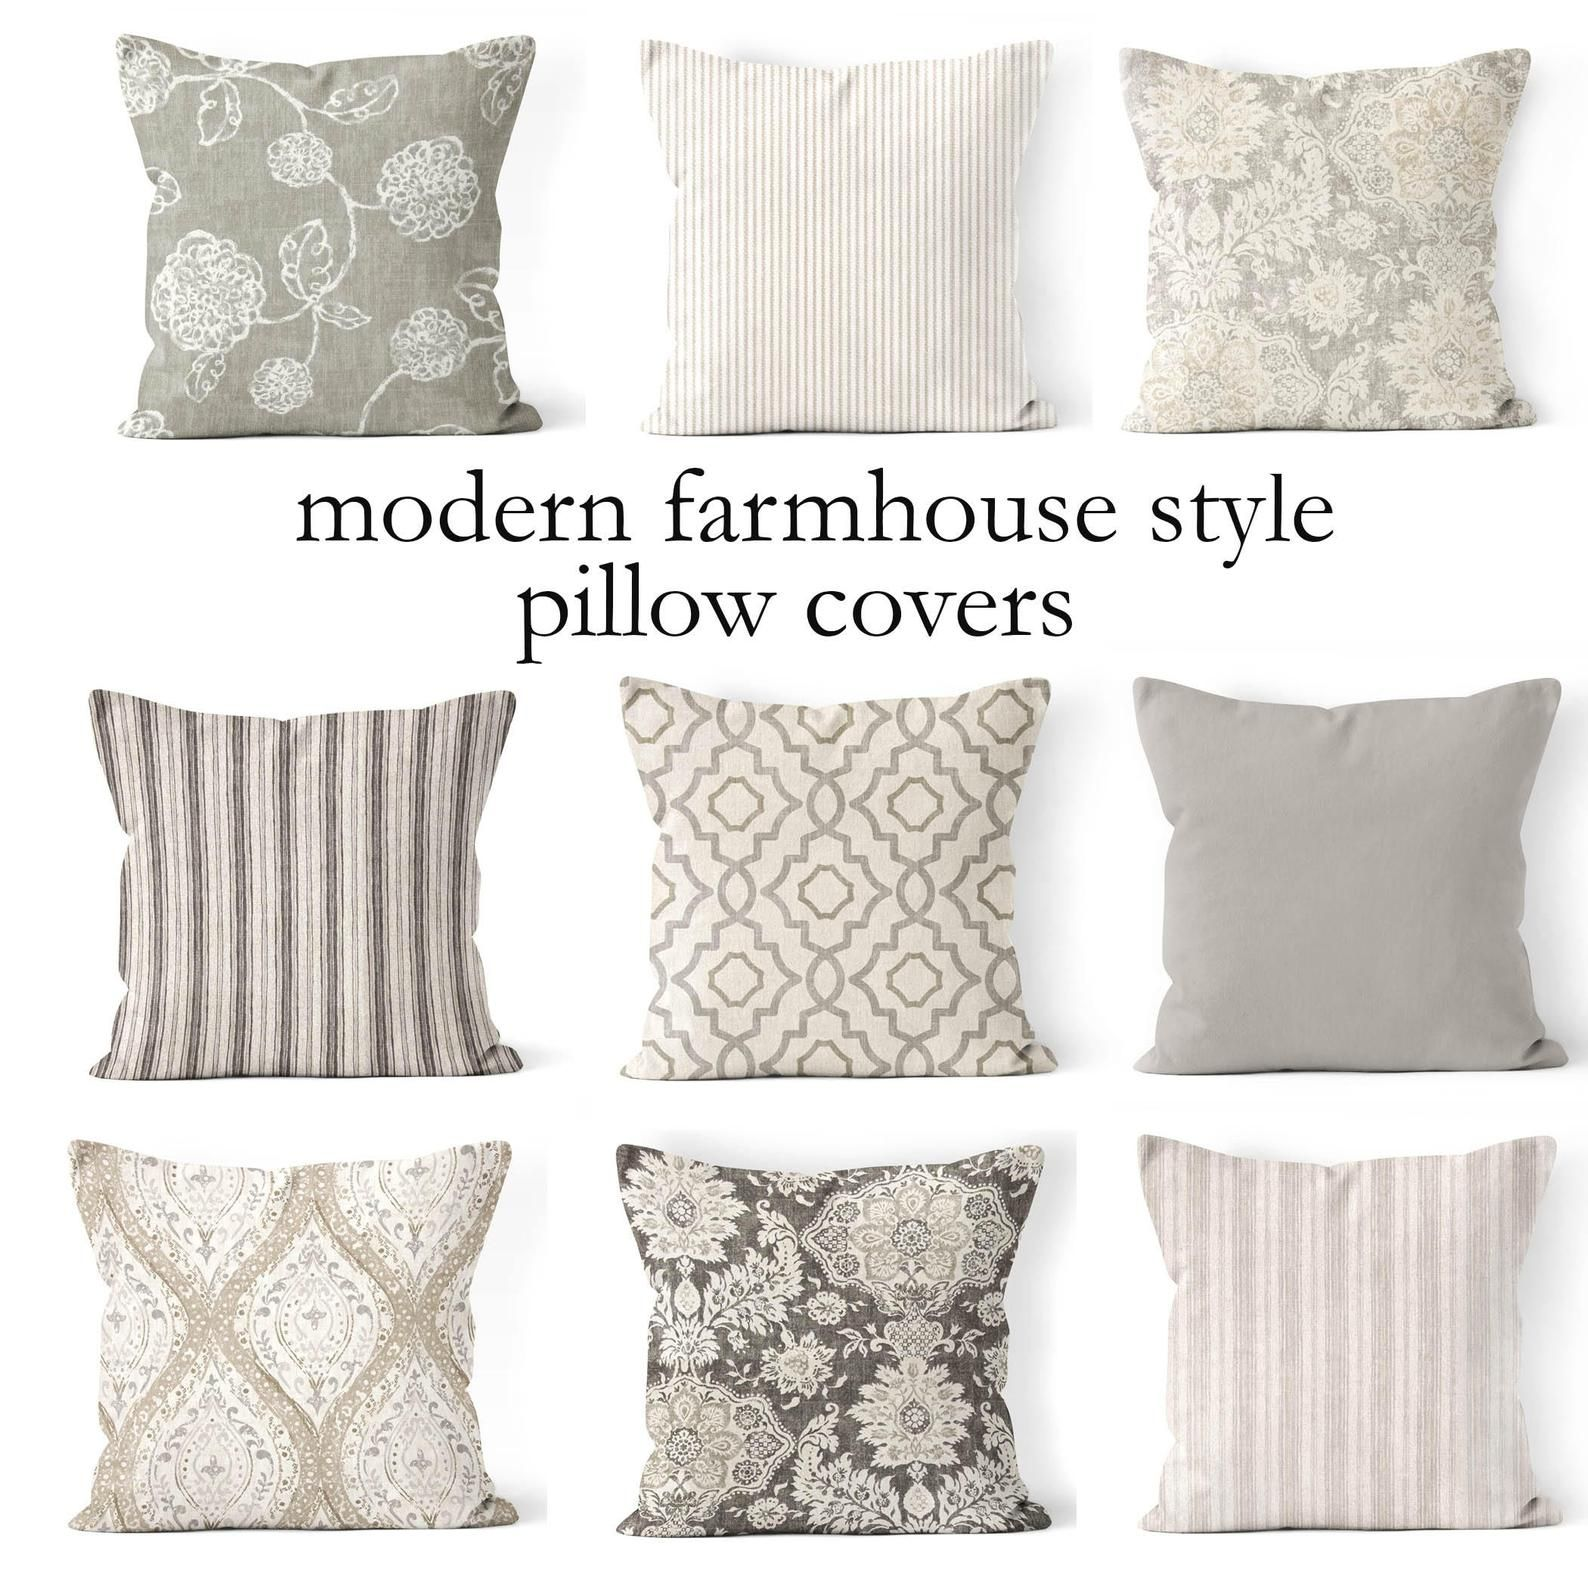 Throw Pillow Coversmix And Match Farmhouse Pillow Cover Etsy In 2020 Small Throw Pillows Throw Pillows Living Room Neutral Throw Pillows